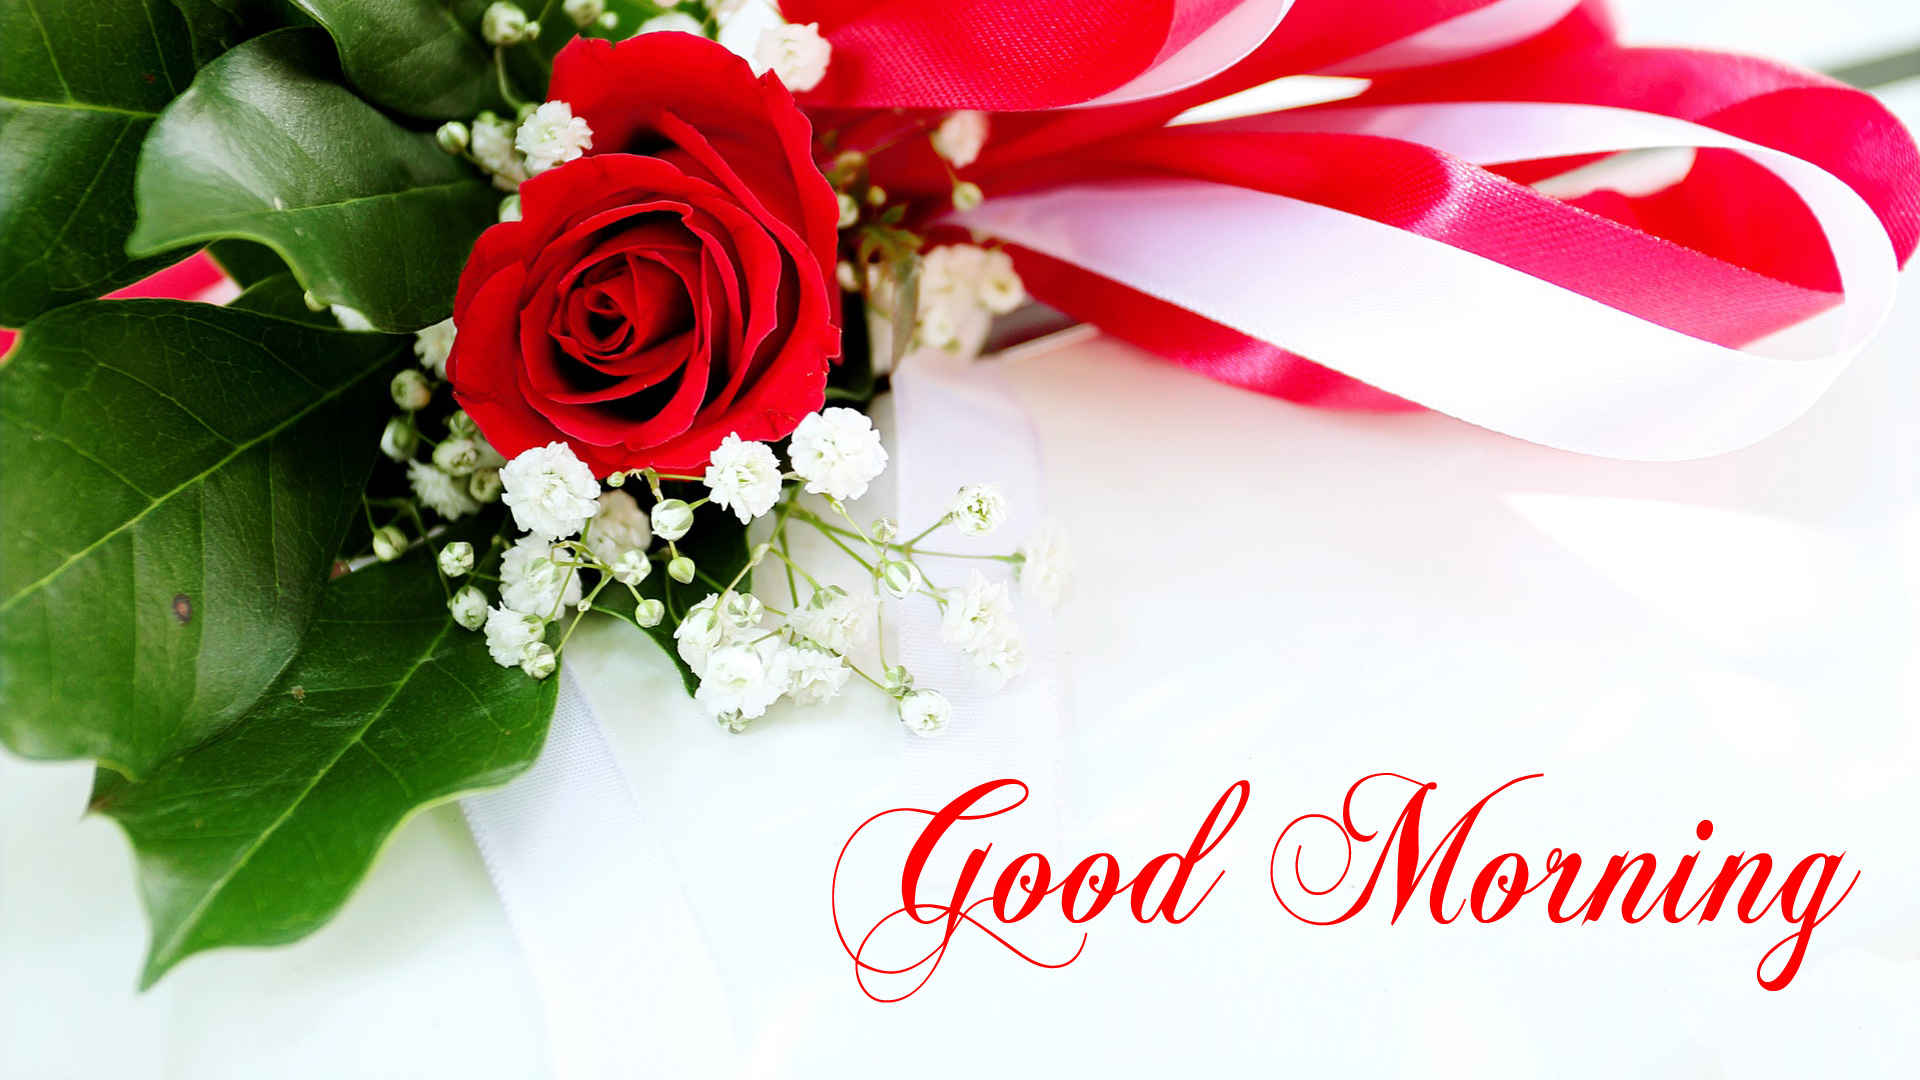 HINDI SHAYERI Good Morning Wallpaper in Full HD